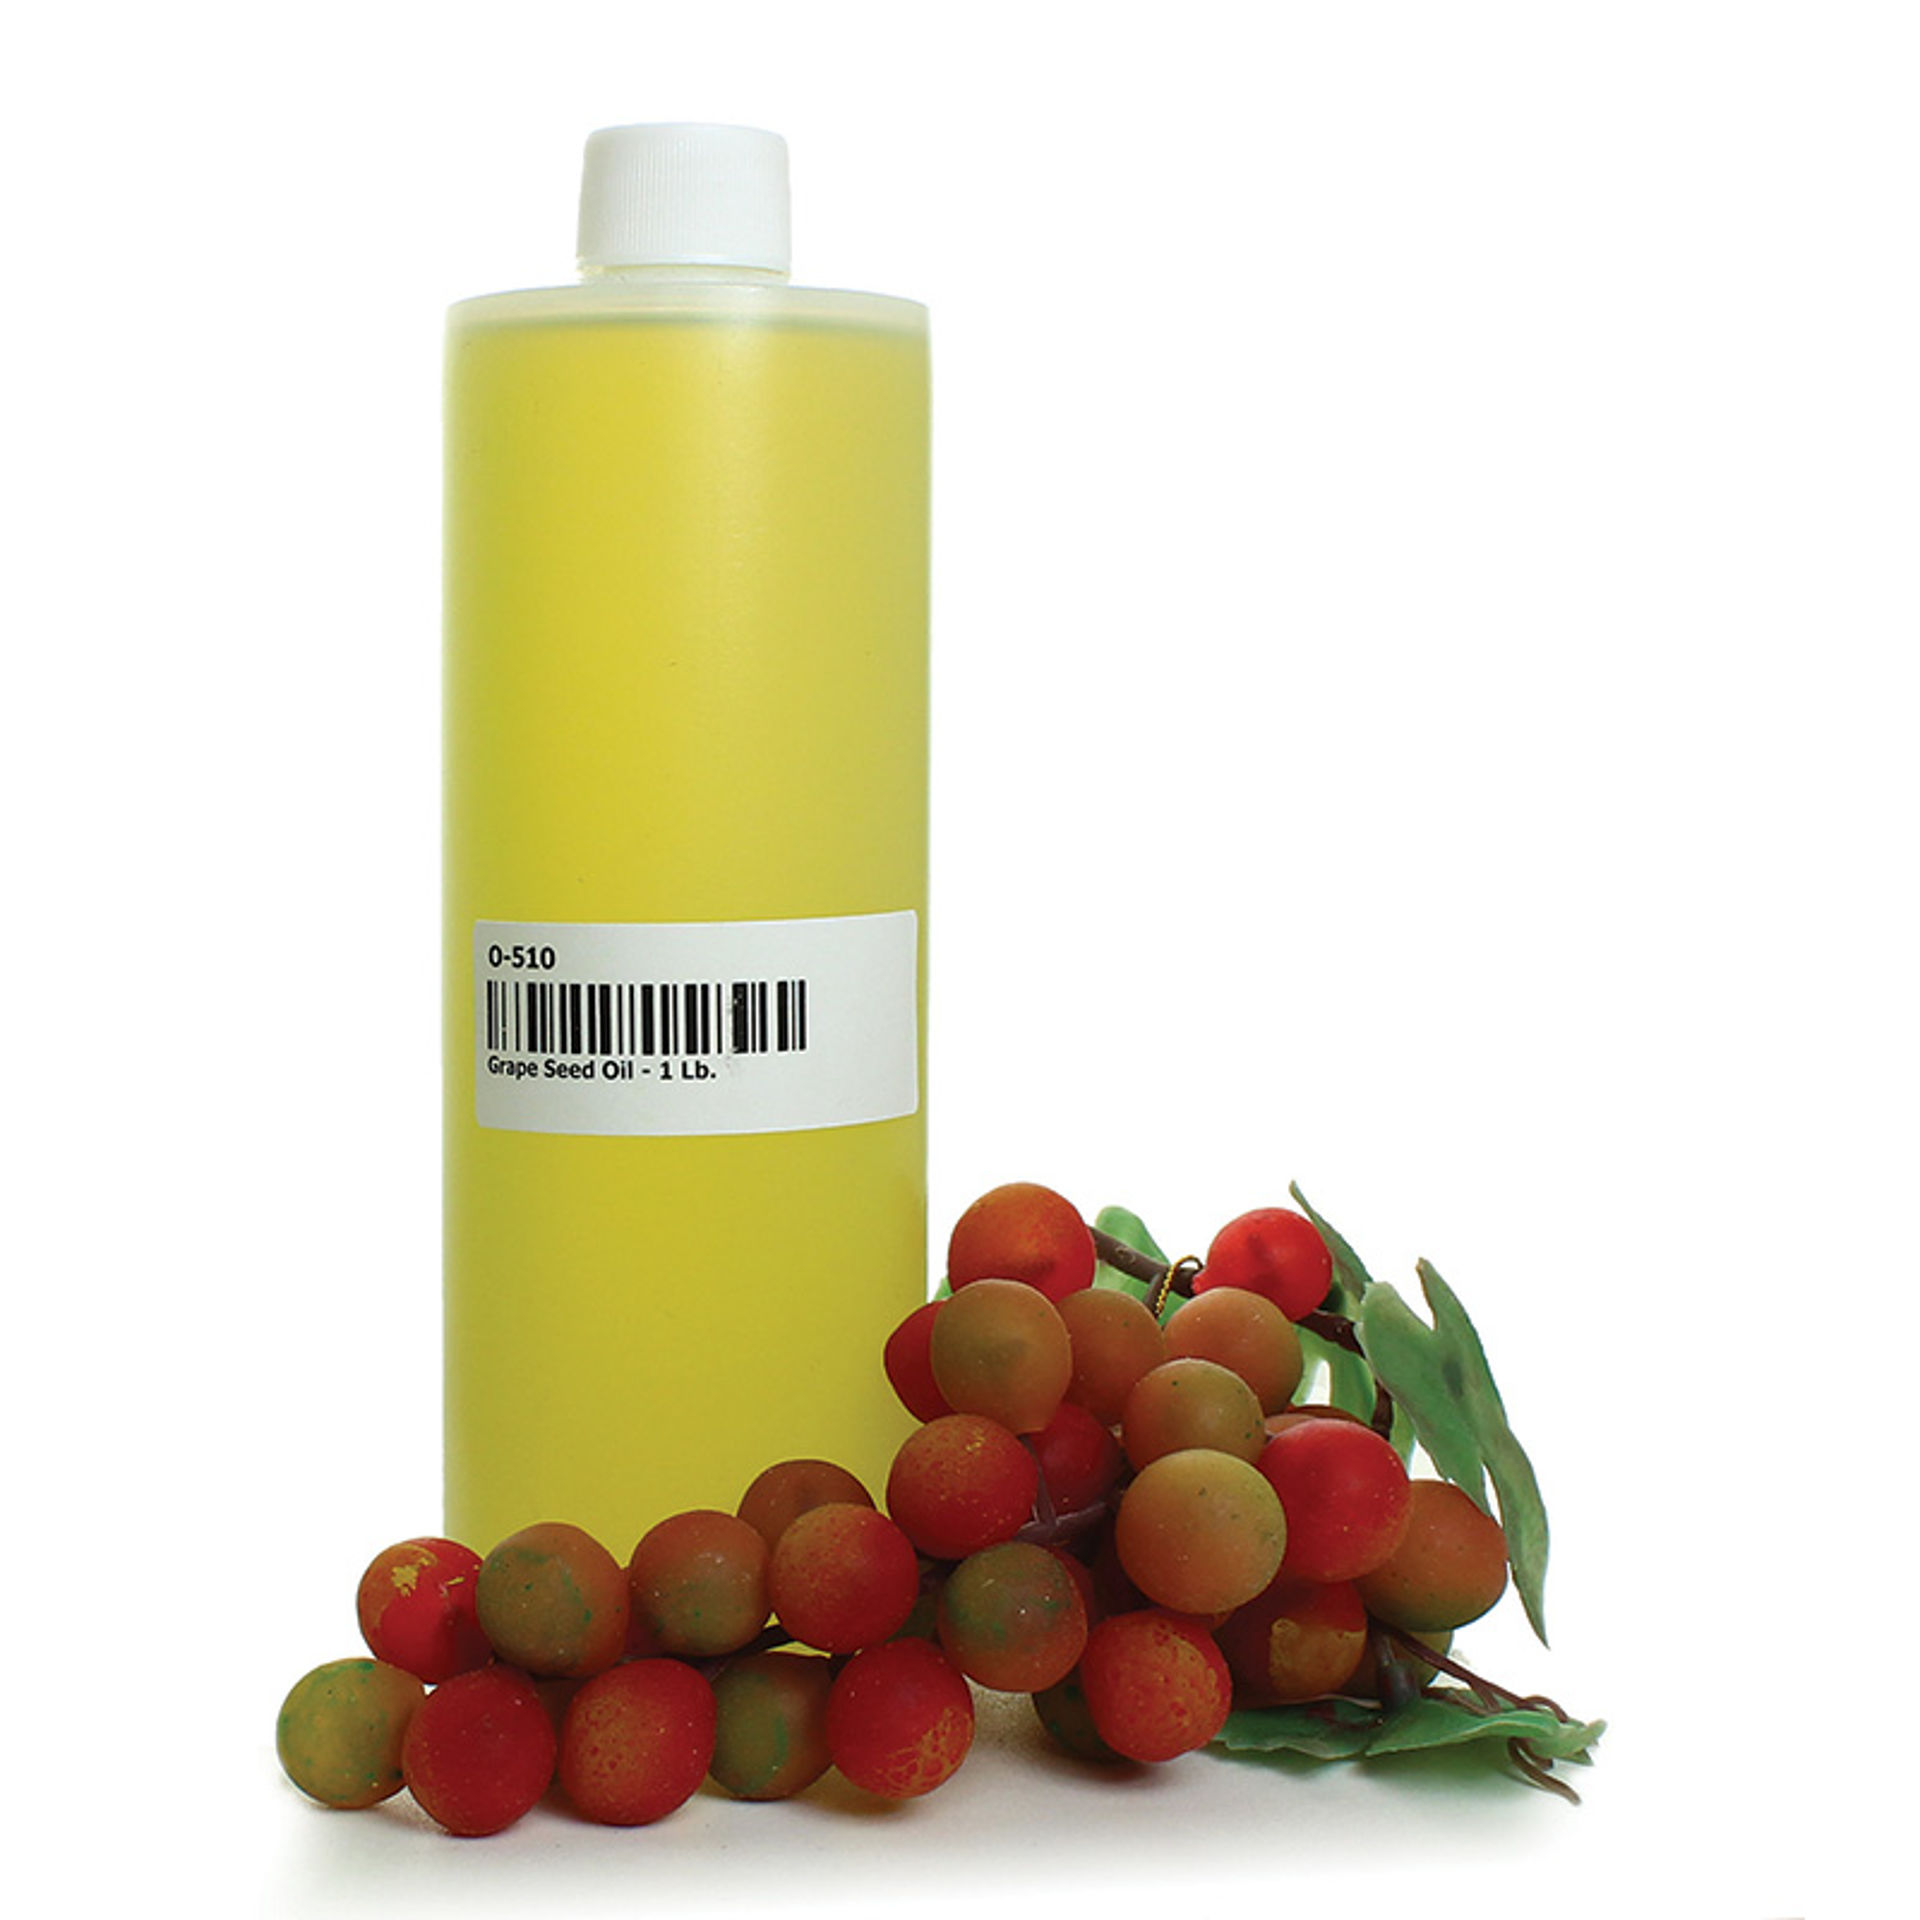 Picture of Grape Seed Oil - 1 Lb.